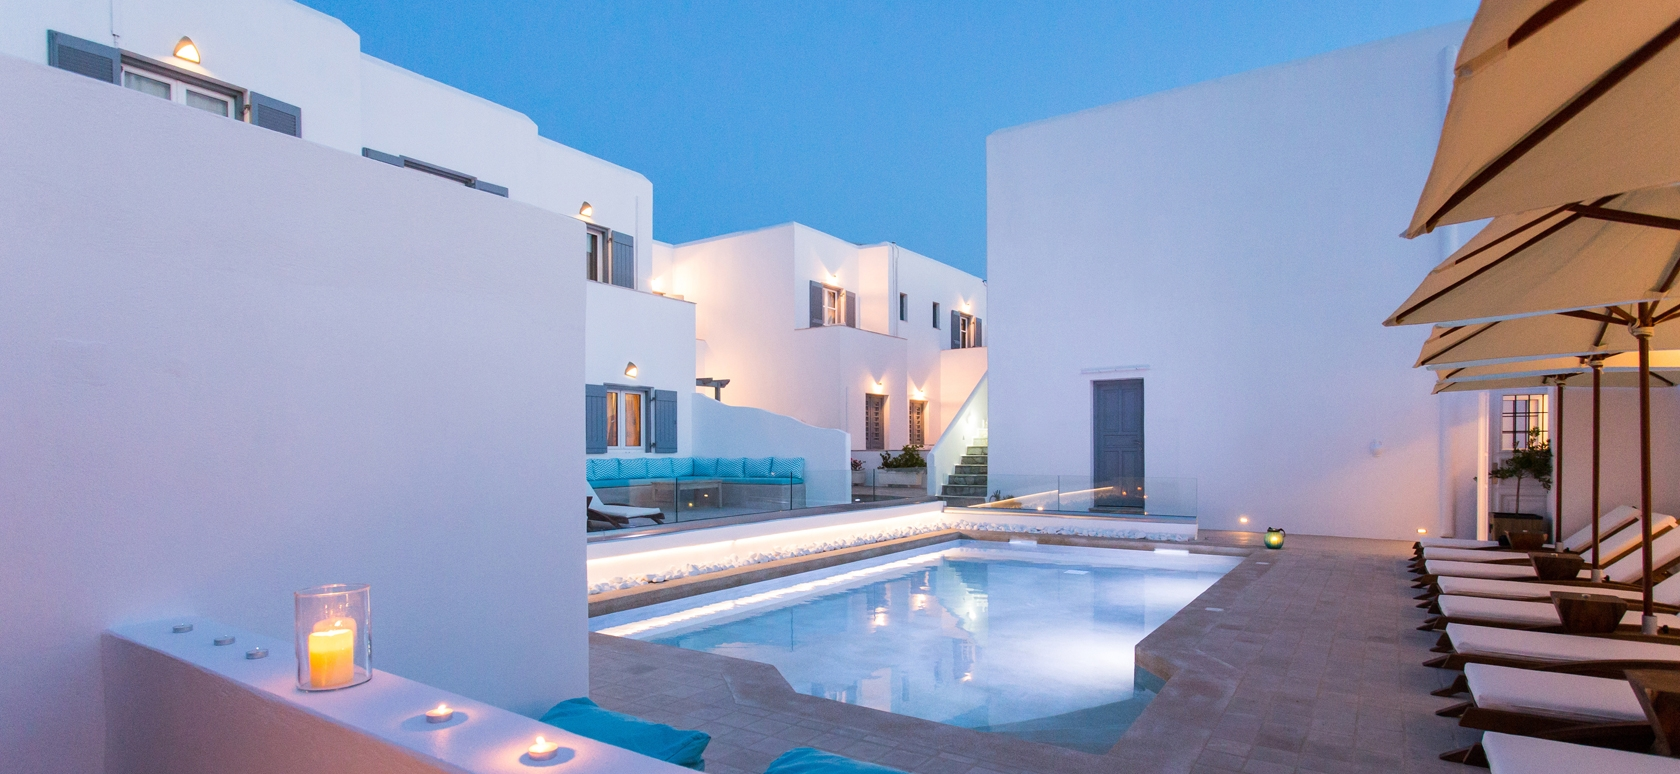 Villa Kelly Rooms and Suites -Paros